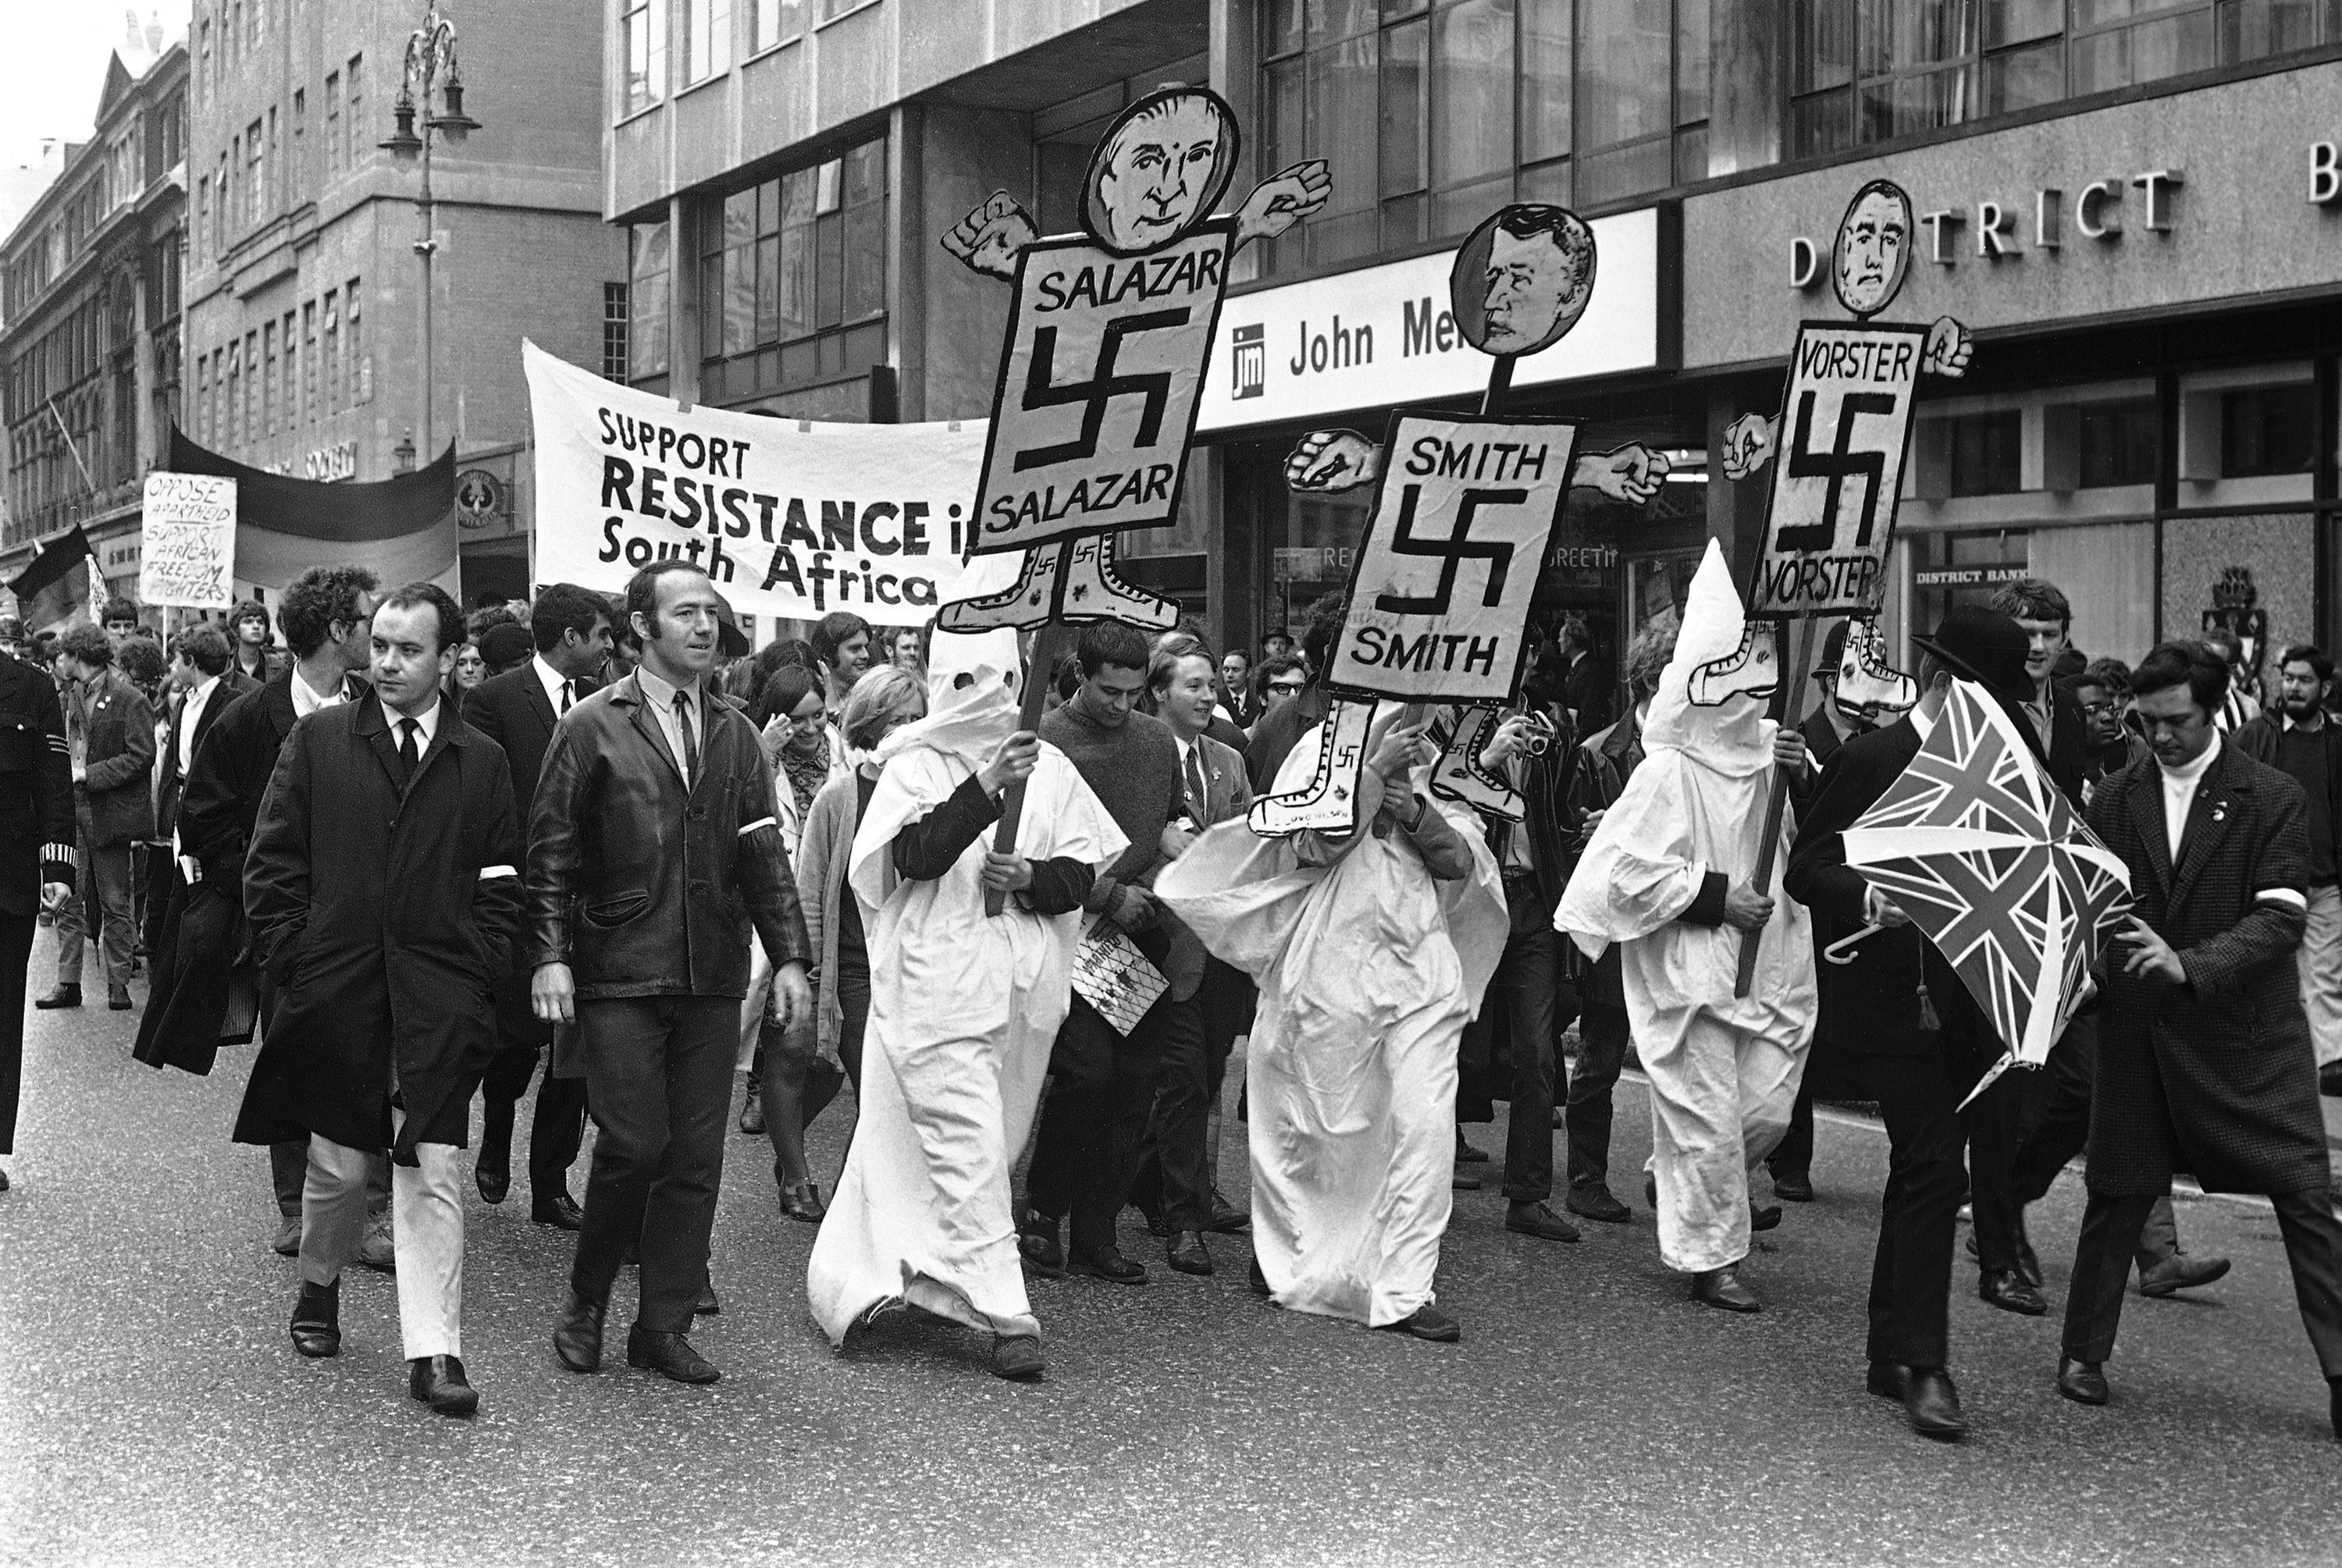 Members wearing white hoods and gowns attending the anti-apartheid movement's South African Freedom Day Rally, hold aloft their banners with Nazi symbols and pictures of Salazar, Smith and Vorster, as they enter Trafalgar Square, London, on June 23, 1968. (AP Photo/Kemp)